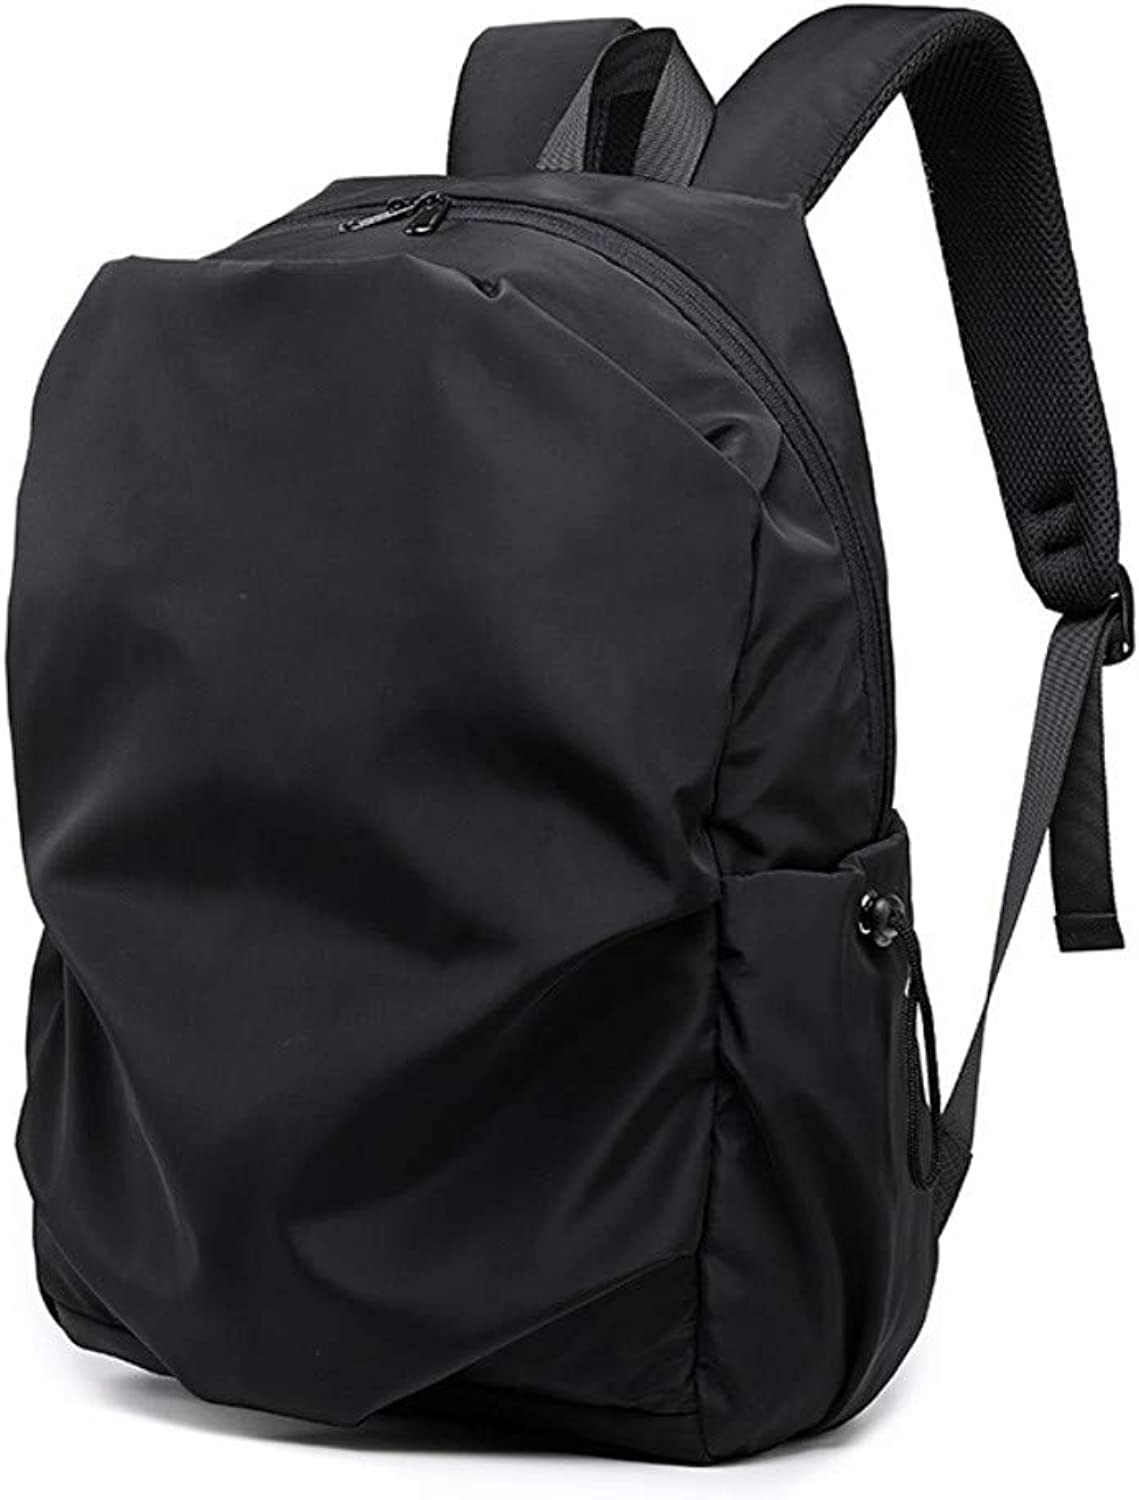 Laptop BackpackBusiness Computer Bag Computer Backpack Male Youth Sports Travel Light Casual Business Men Hiking Riding Camping Backpack